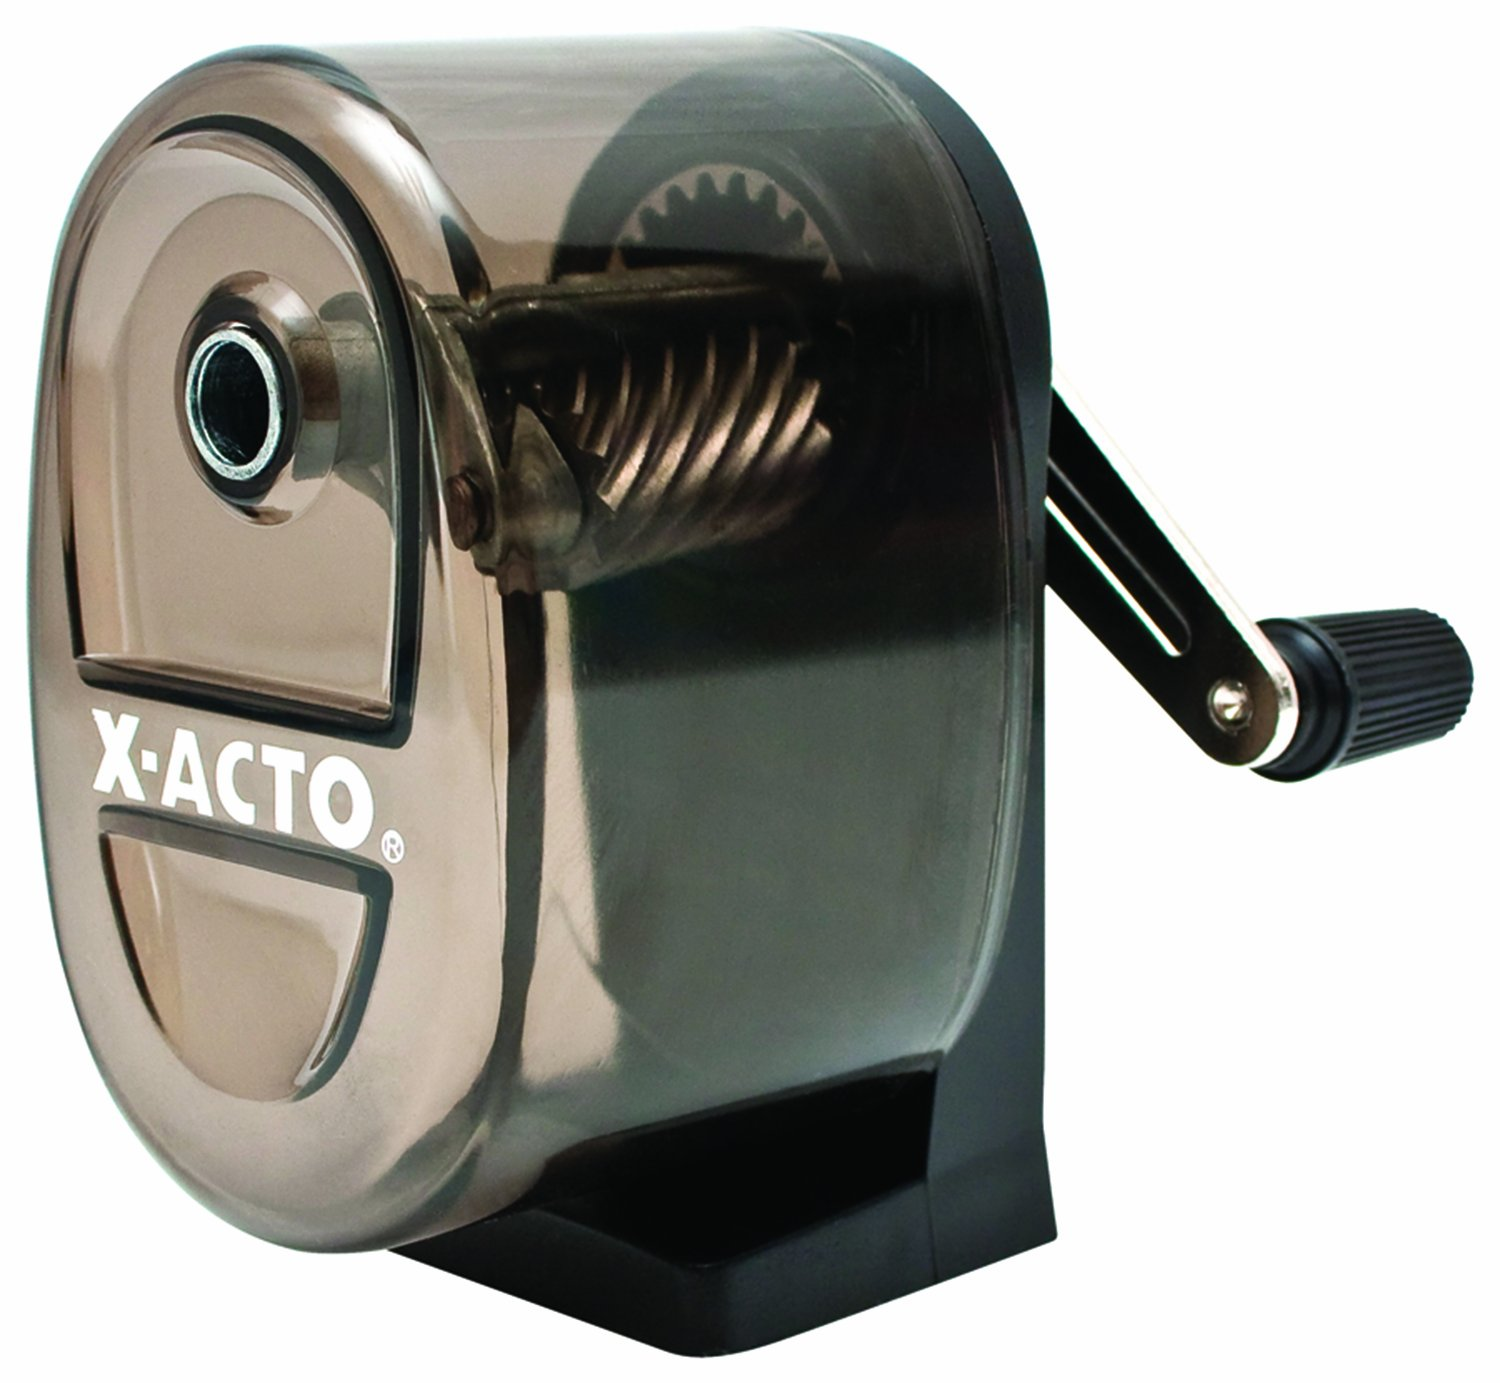 X-ACTO Boston Table-Mount/Wall-Mount Manual Pencil Sharpener, Black (1083) by X-Acto